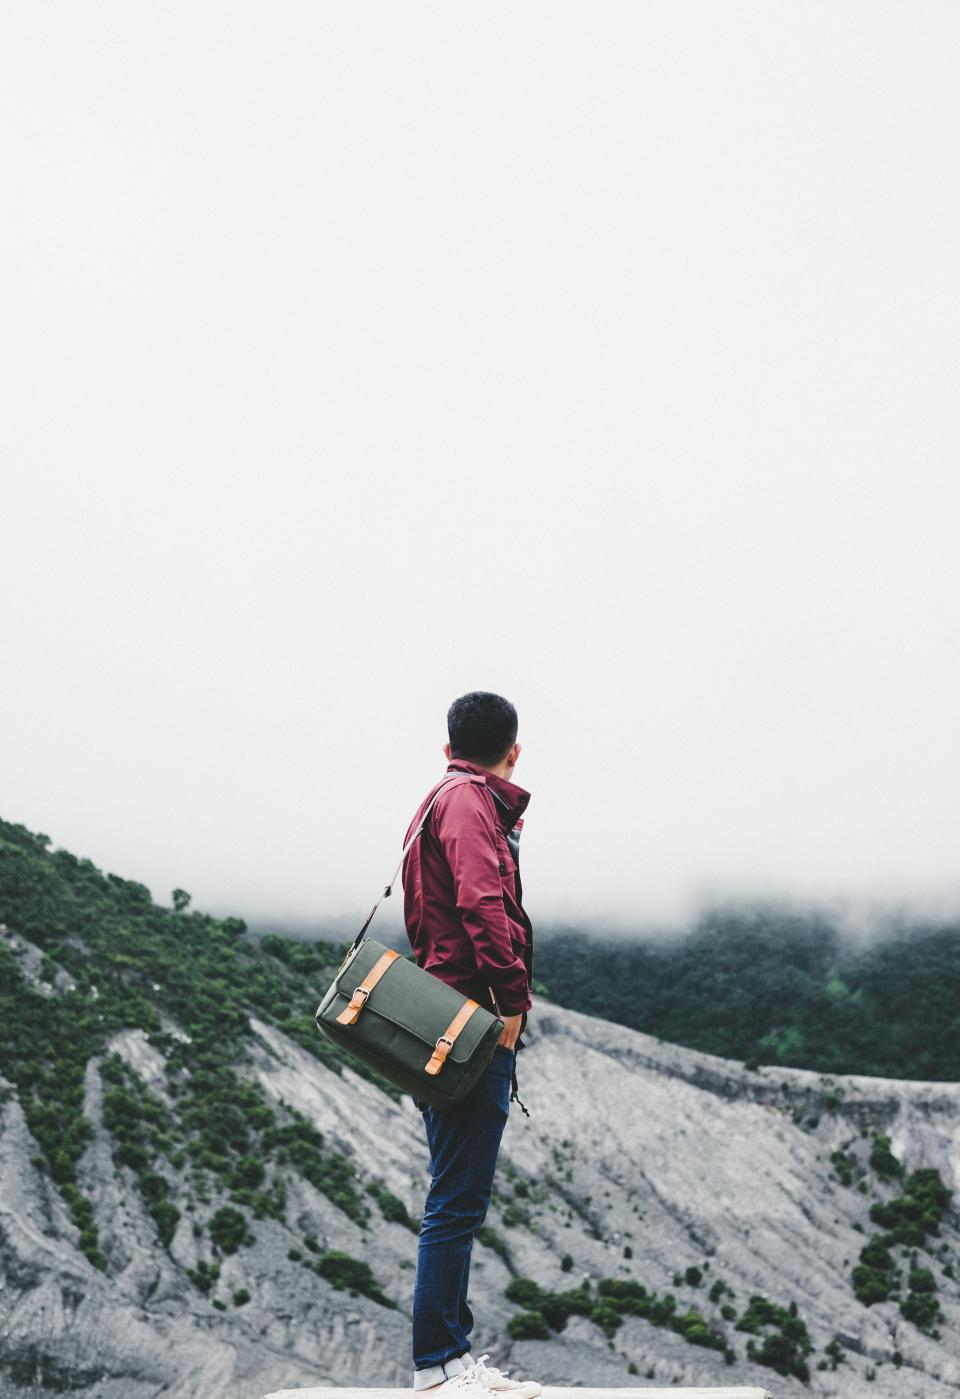 adventure, fog, guy, man, people, landscape, clouds, photographer, bag, trees, grass, sky, outdoor, nature, male